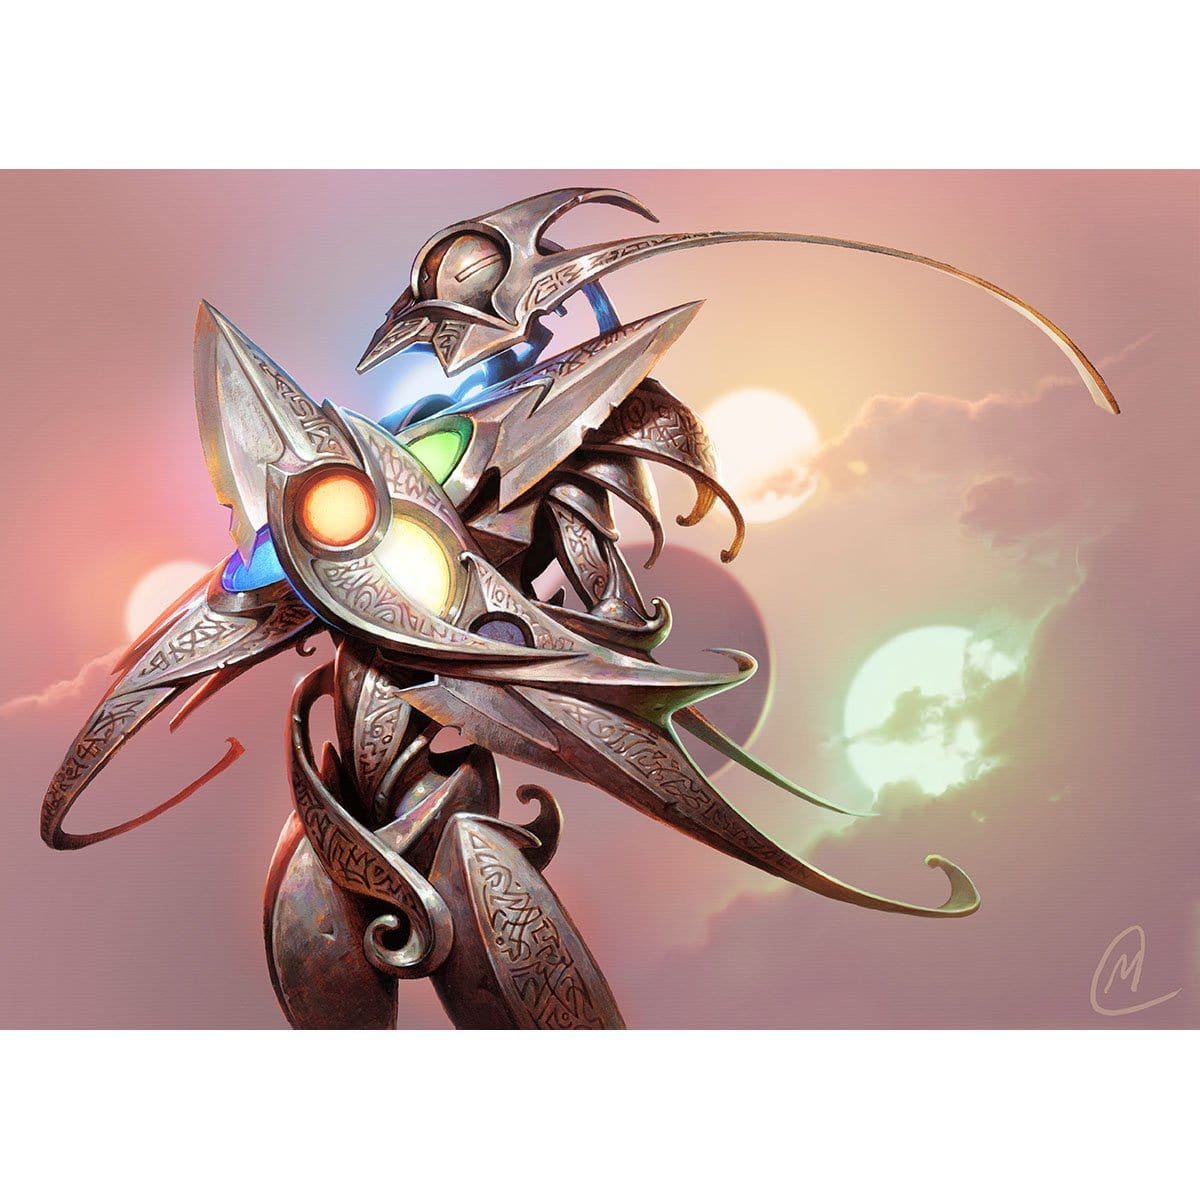 Etched Champion Print - Print - Original Magic Art - Accessories for Magic the Gathering and other card games